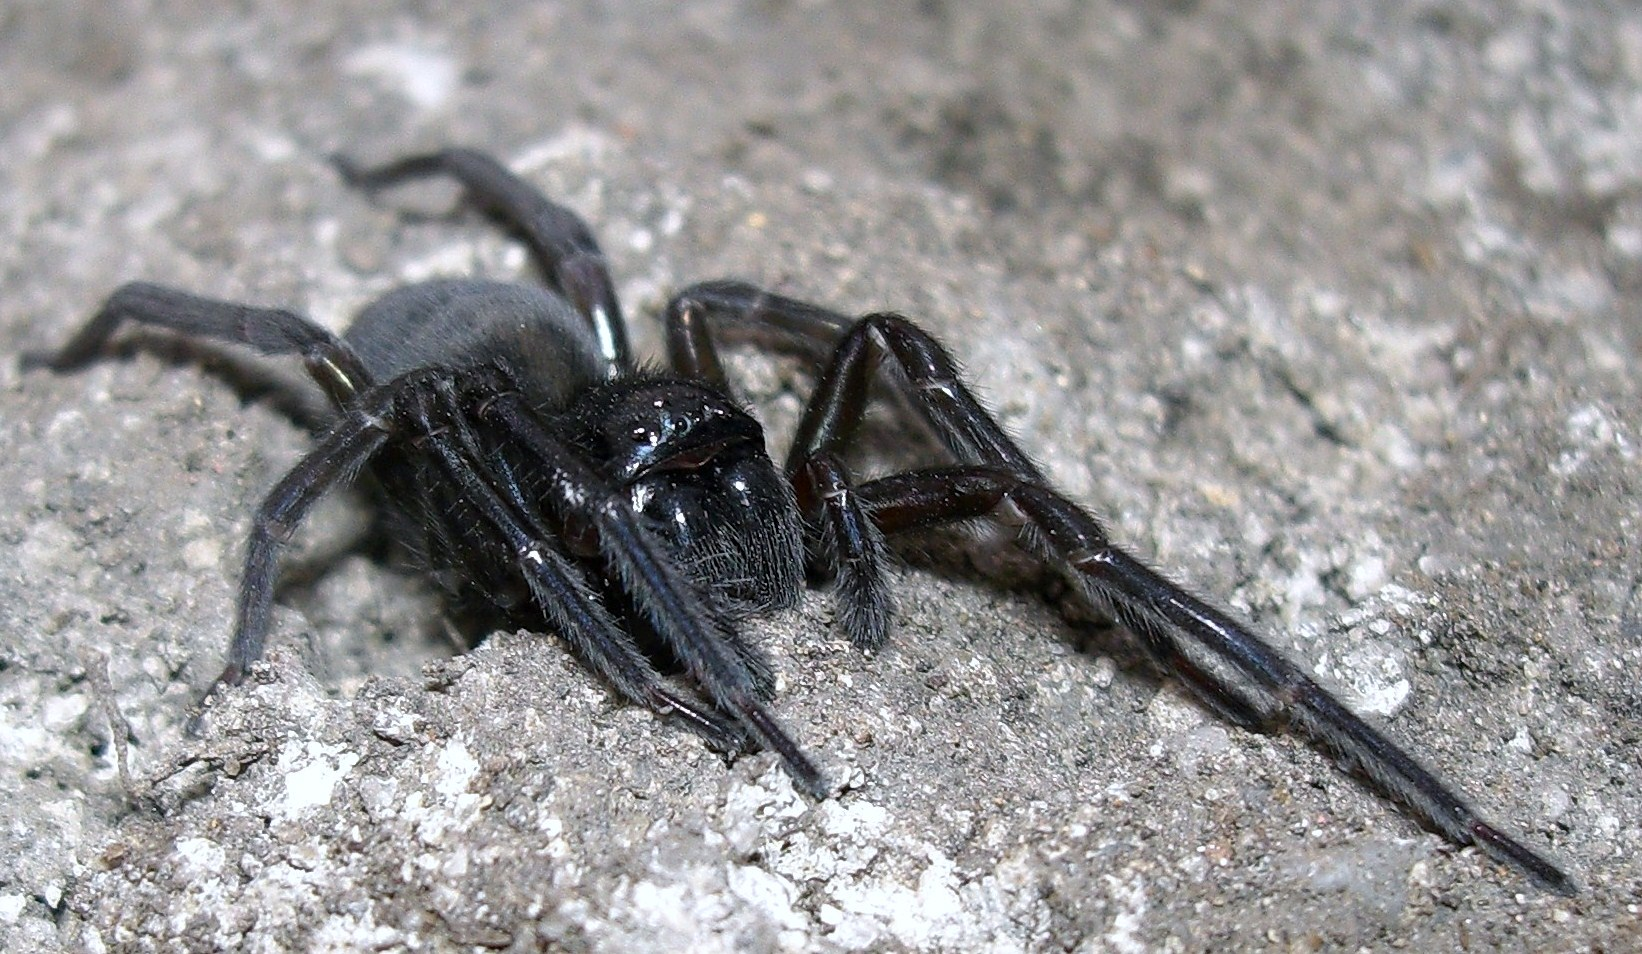 Tapezierspinne